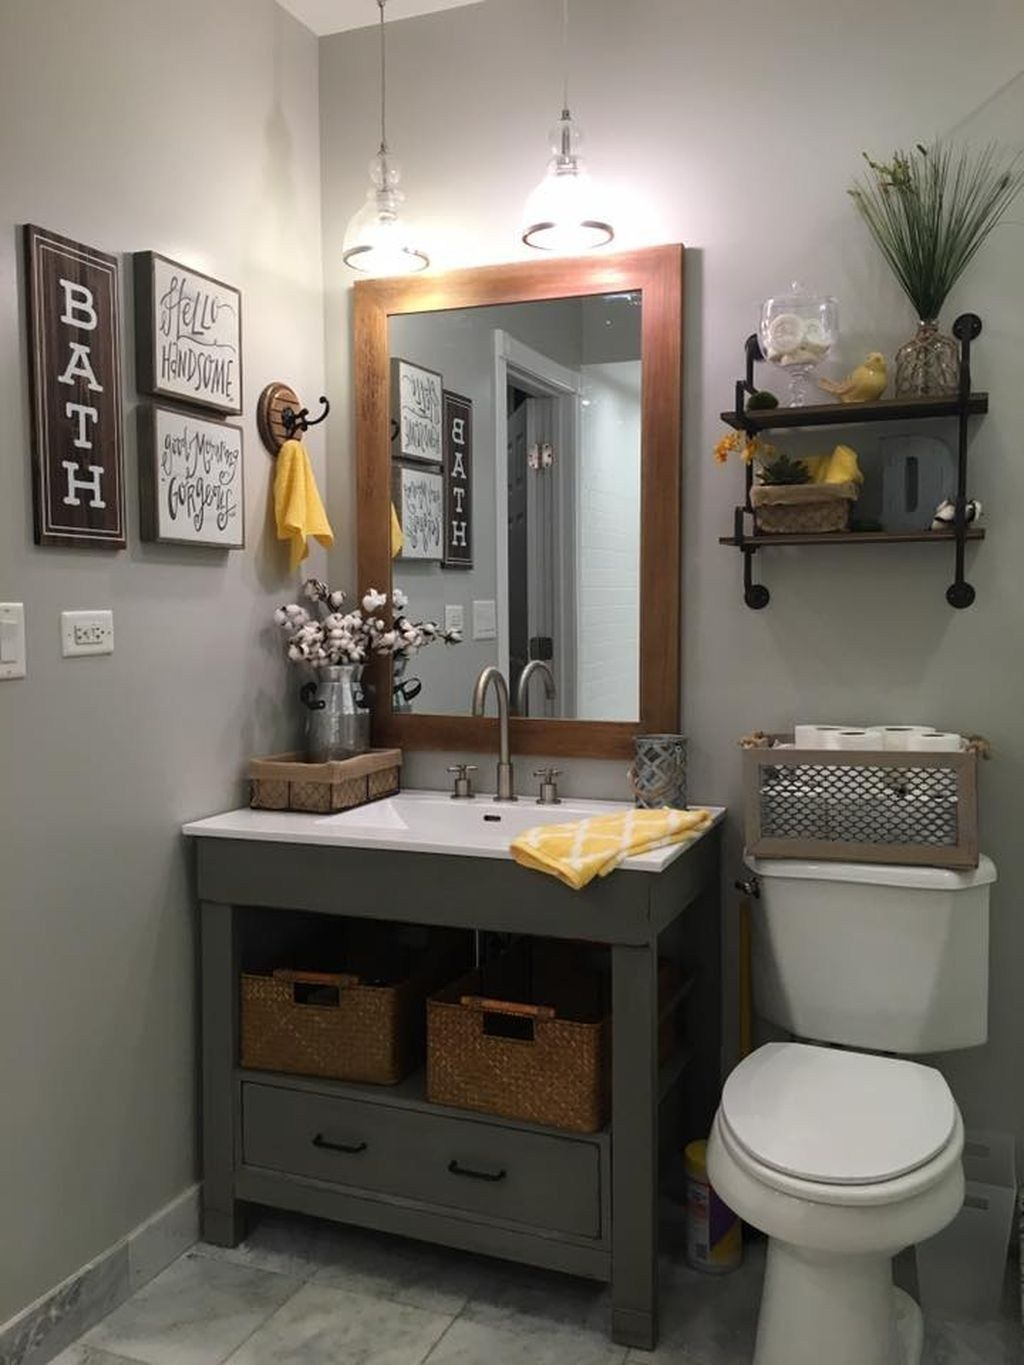 49 Incredible Small Bathroom Remodel Ideas Zyhomy Bathroom Vanity Remodel Simple Bathroom Easy Bathroom Makeover